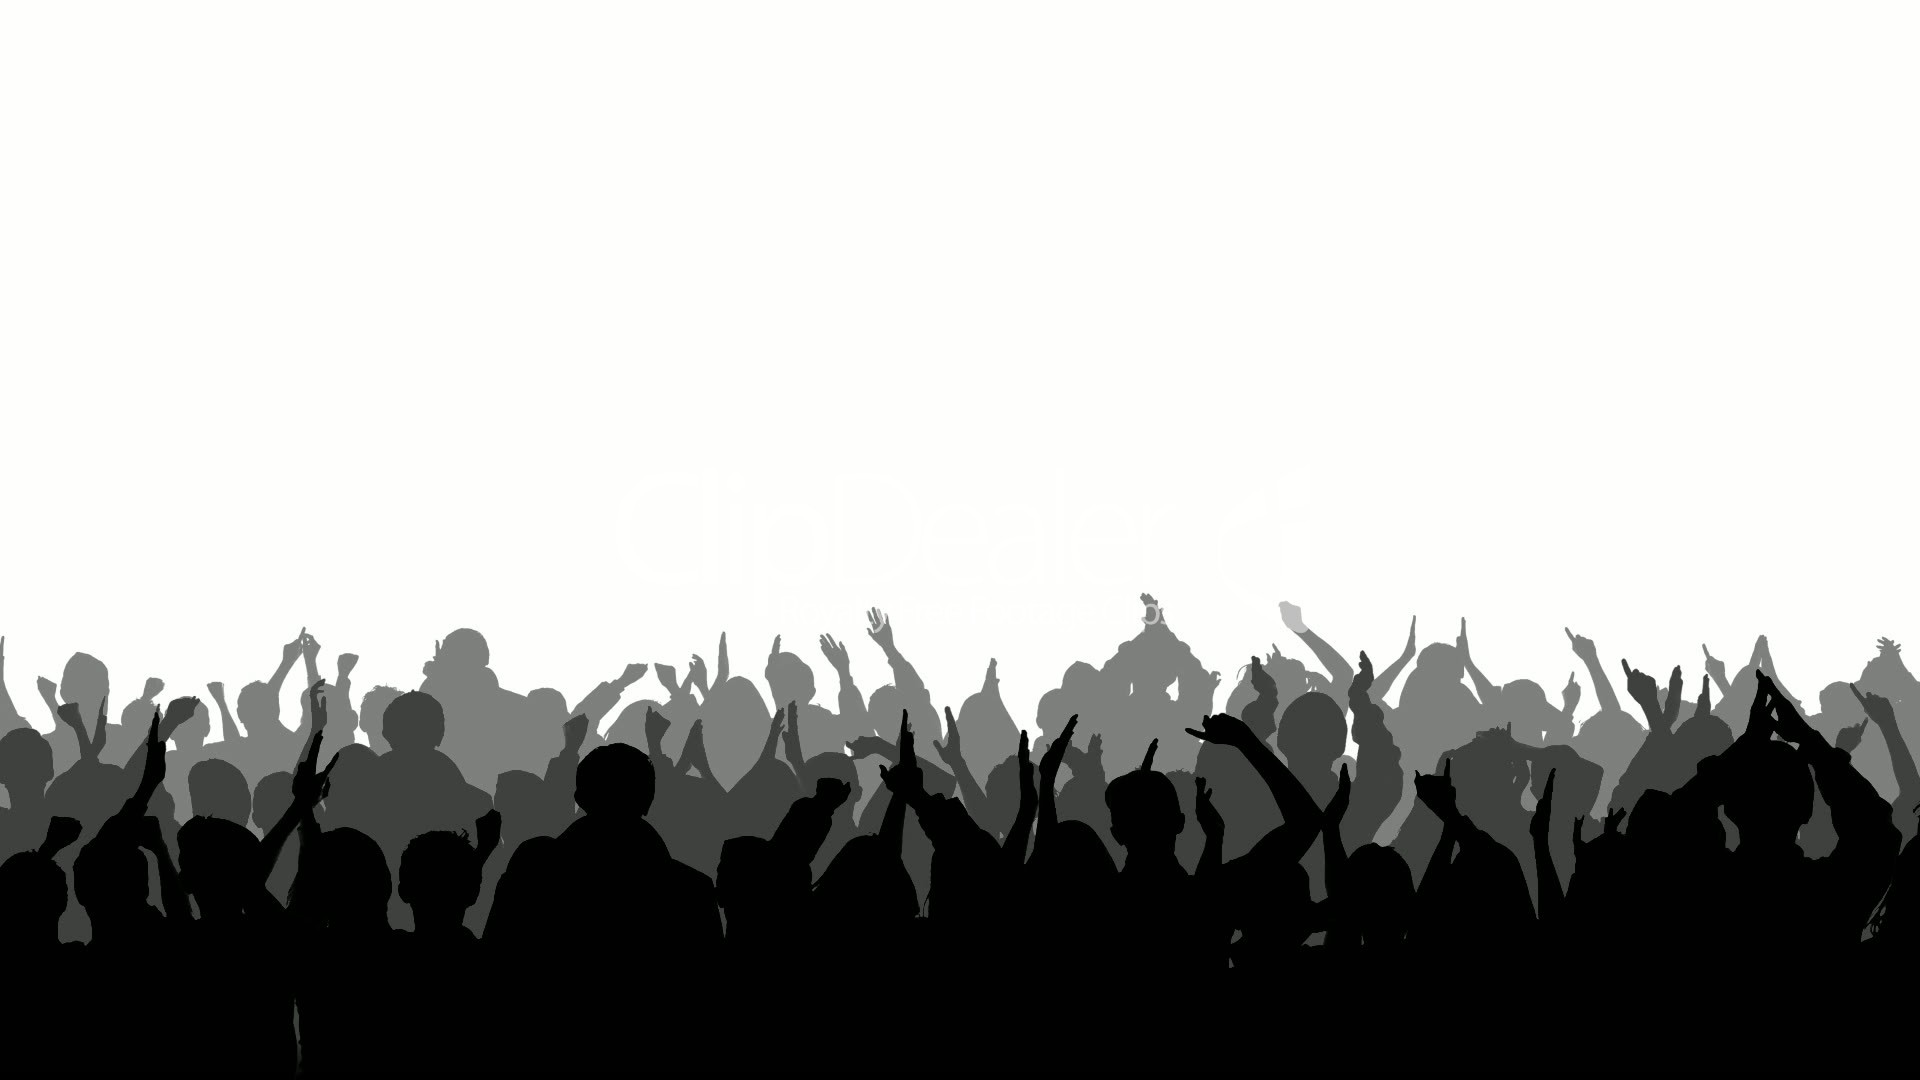 Fans clipart summer concert Crowd Audience Audience clapping clapping: